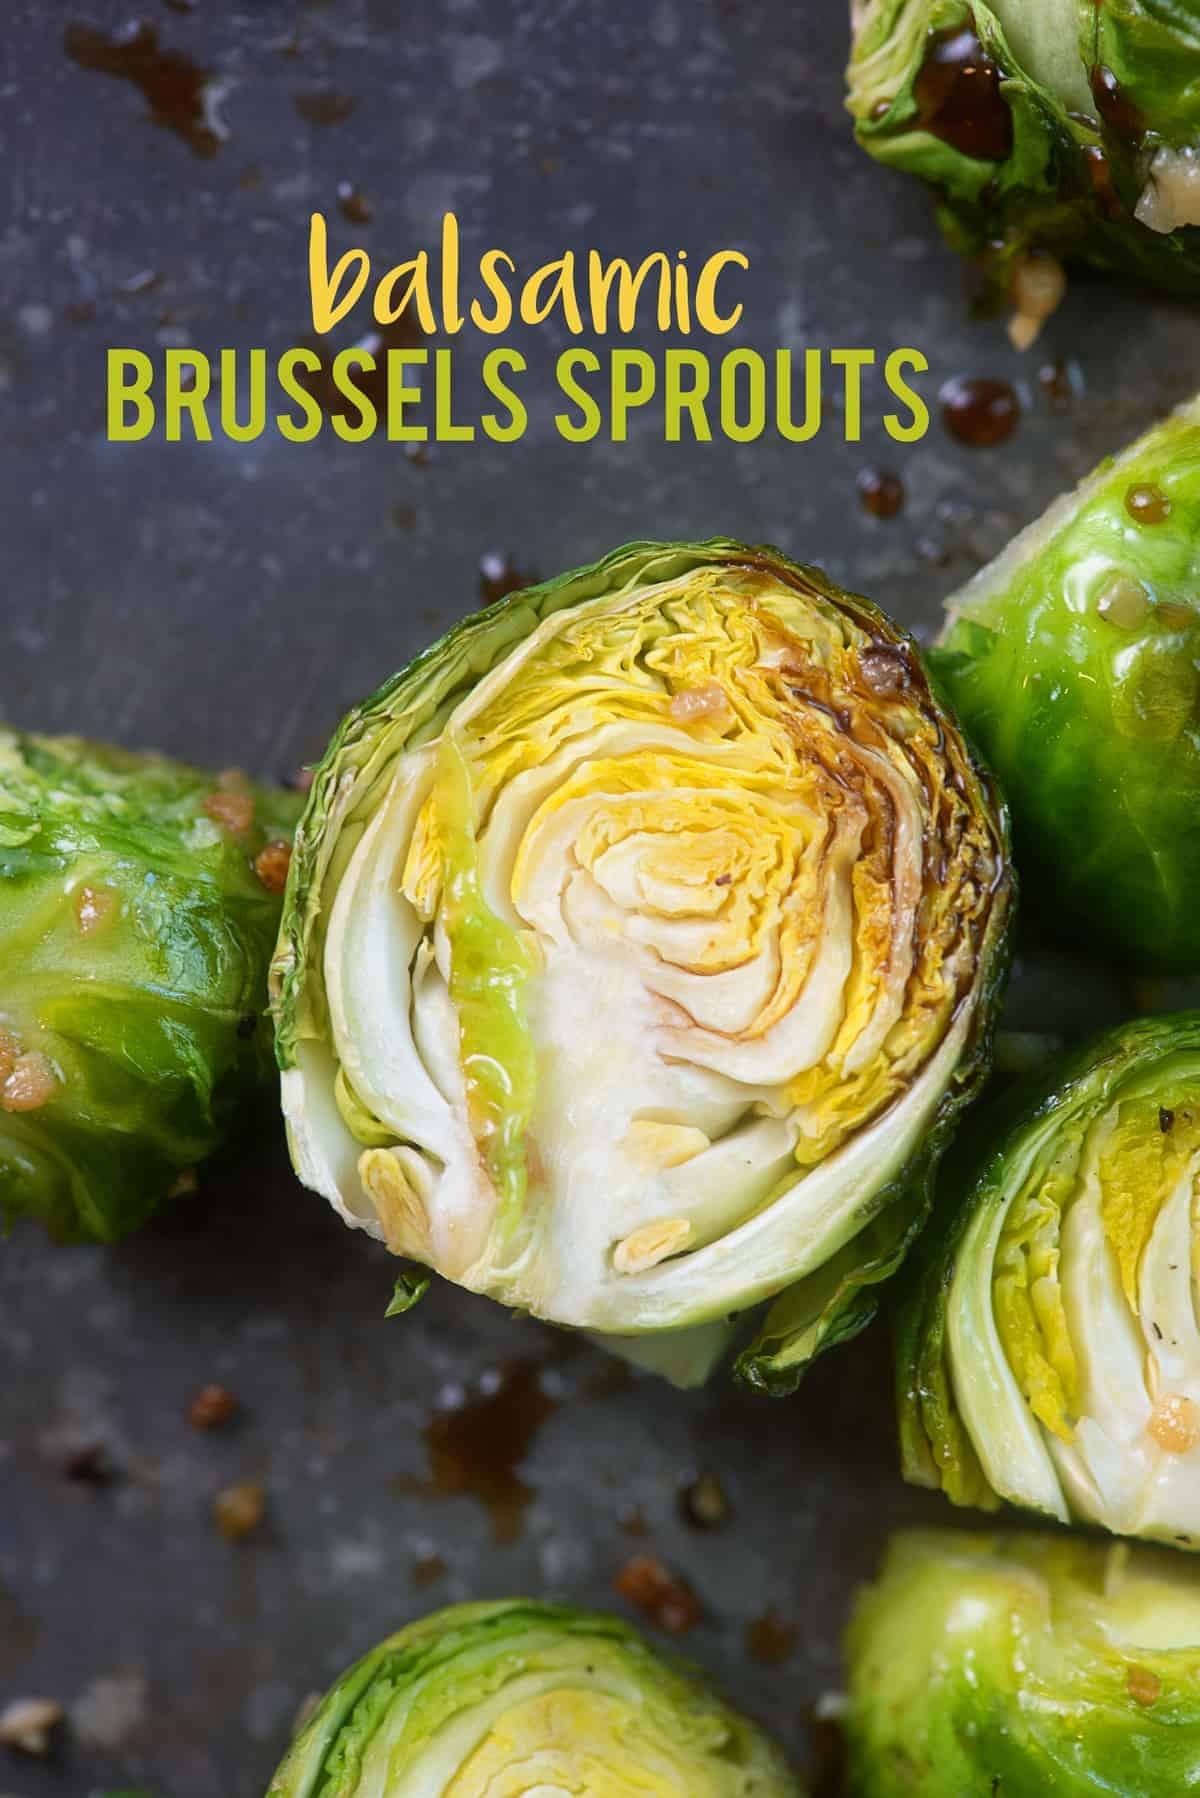 Balsamic Roasted Brussels Sprouts! This recipe is my favorite way to eat brussels sprouts! So much flavor and really easy too! #lowcarb #keto #brusselssprouts #recipe